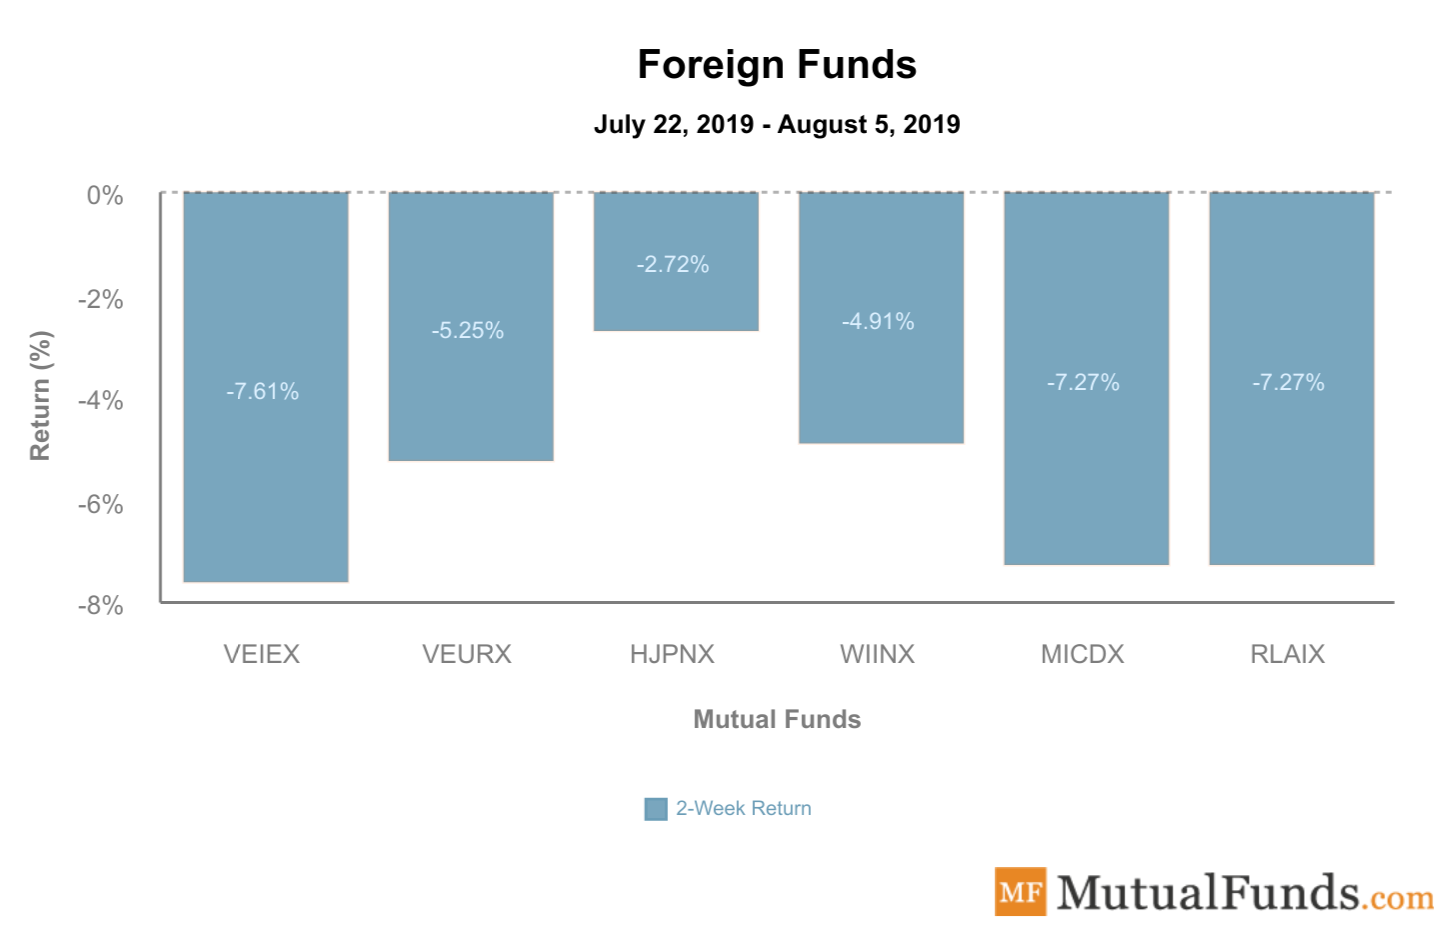 Foreign Funds August 9 2019